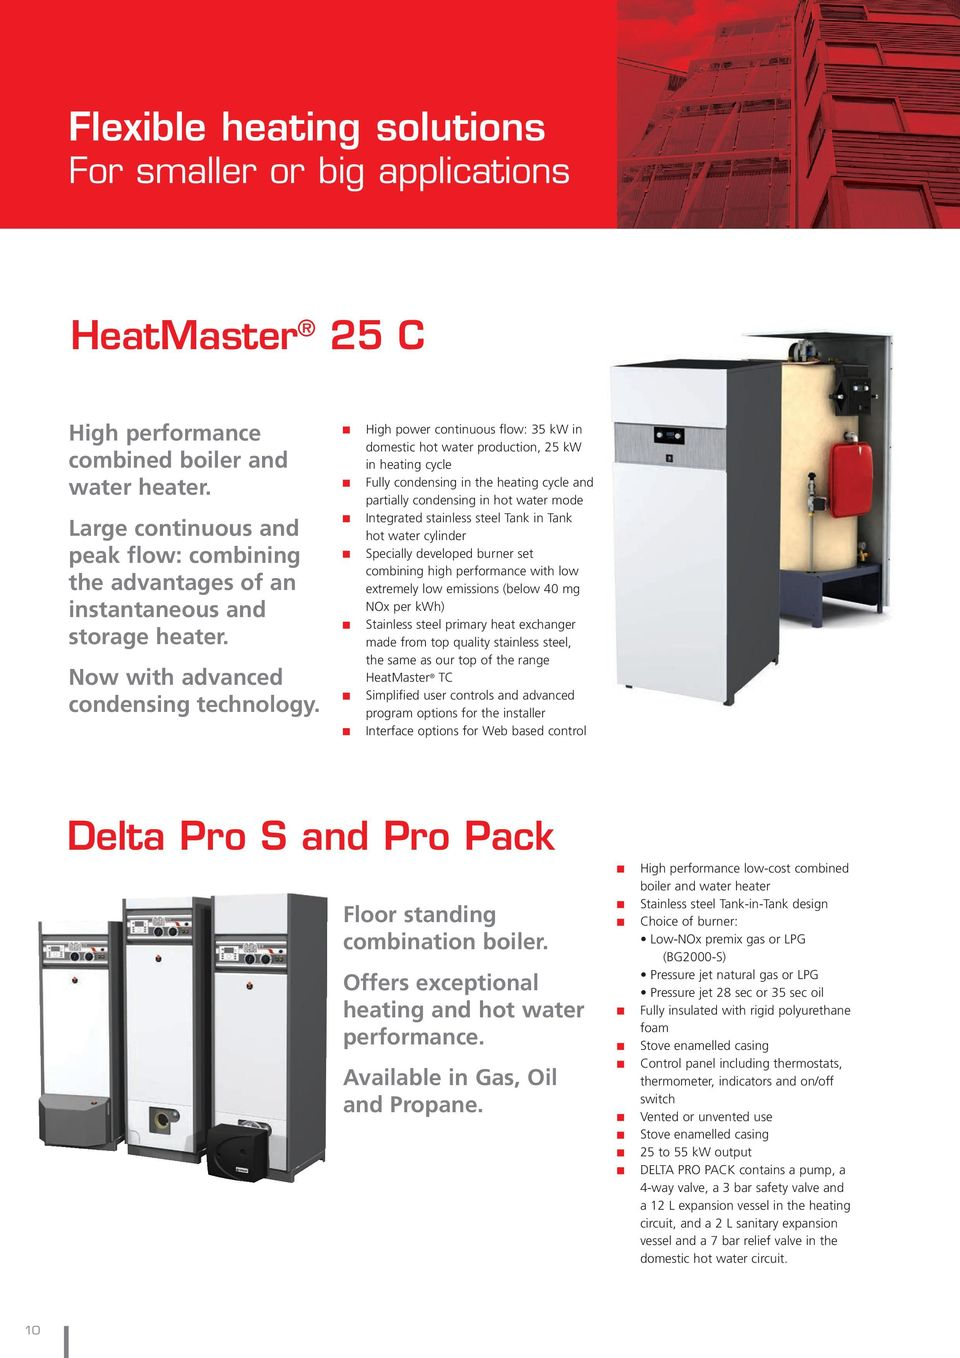 High power continuous flow: 35 kw in domestic hot water production, 25 kw in heating cycle Fully condensing in the heating cycle and partially condensing in hot water mode Integrated stainless steel